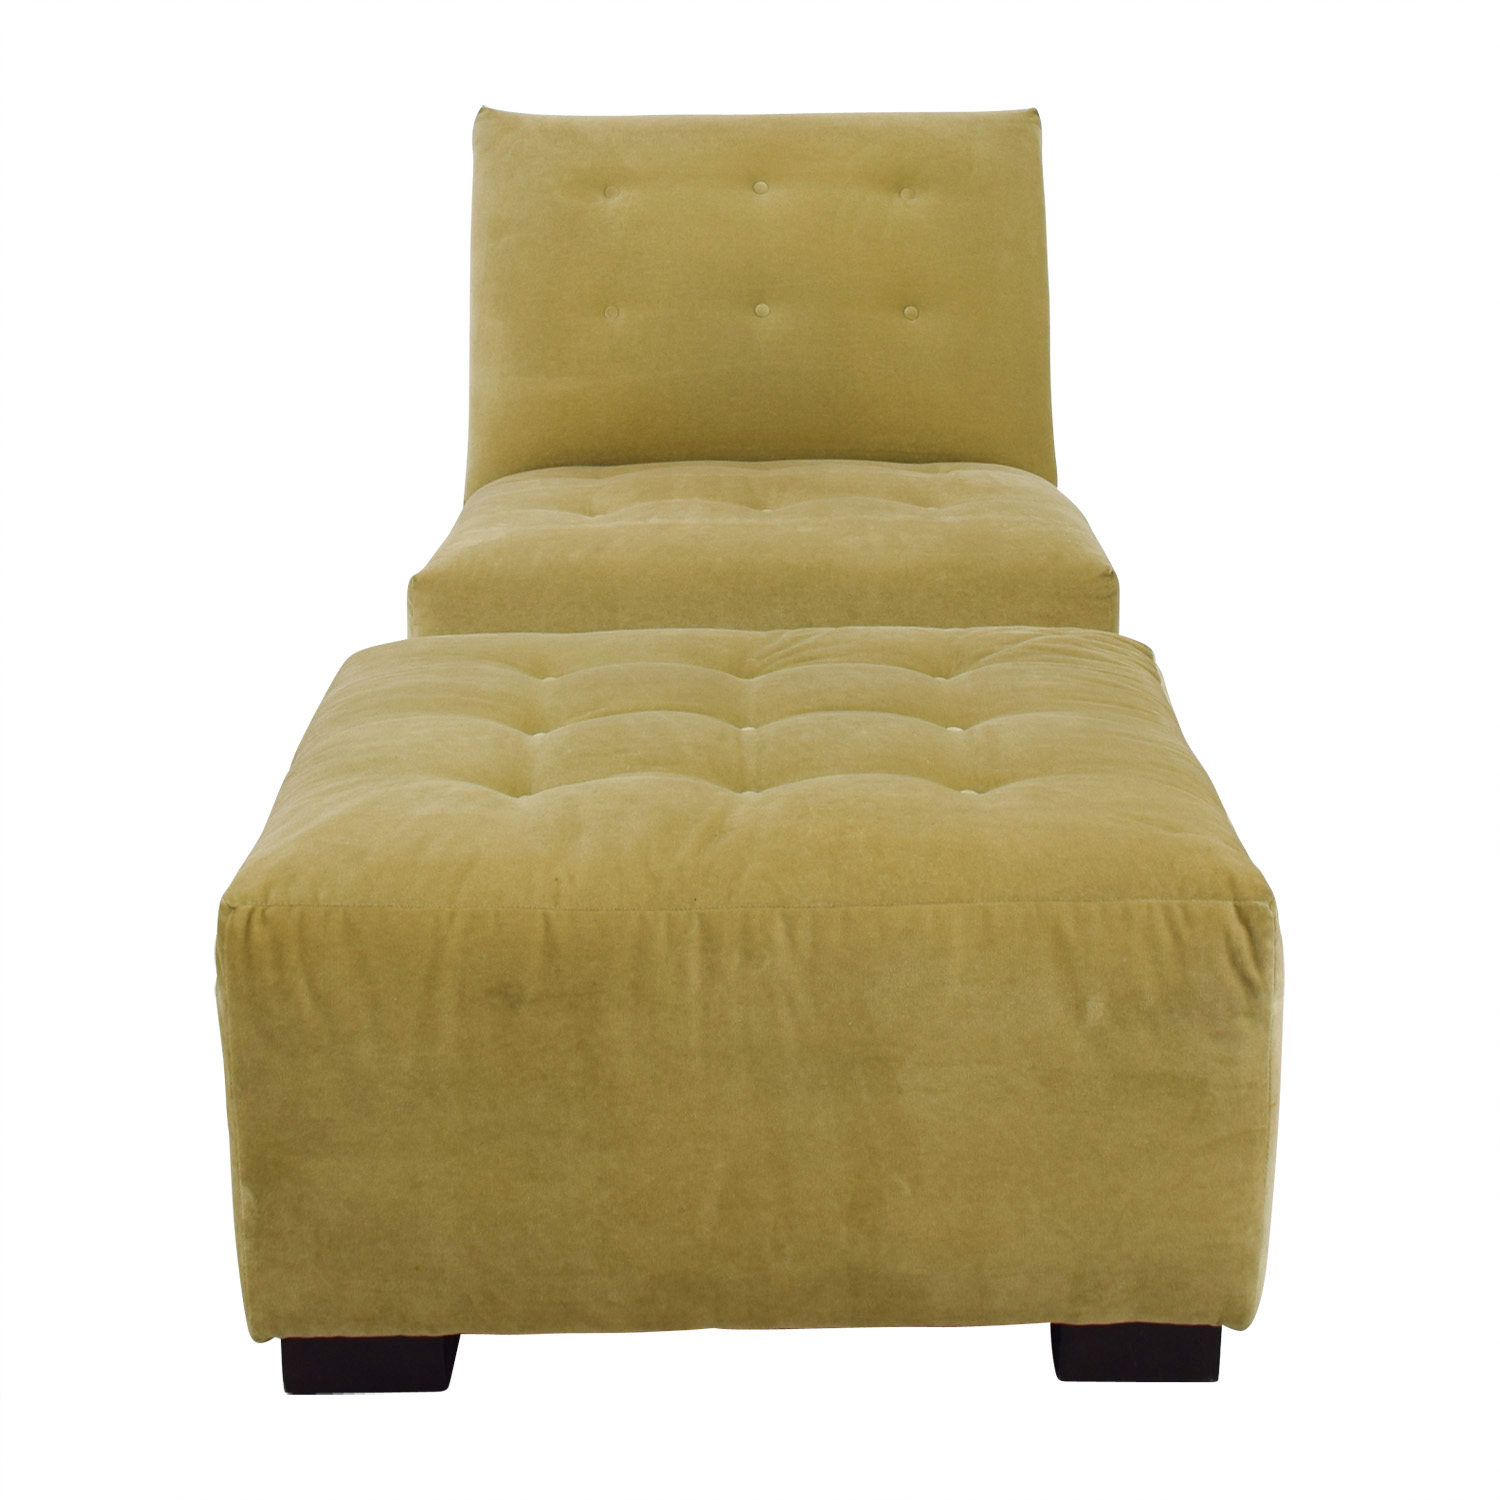 Mitchell Gold + Bob Williams Mitchell Gold + Bob Williams Sage Green Tufted Velvet Lounge Chair & Ottoman nyc